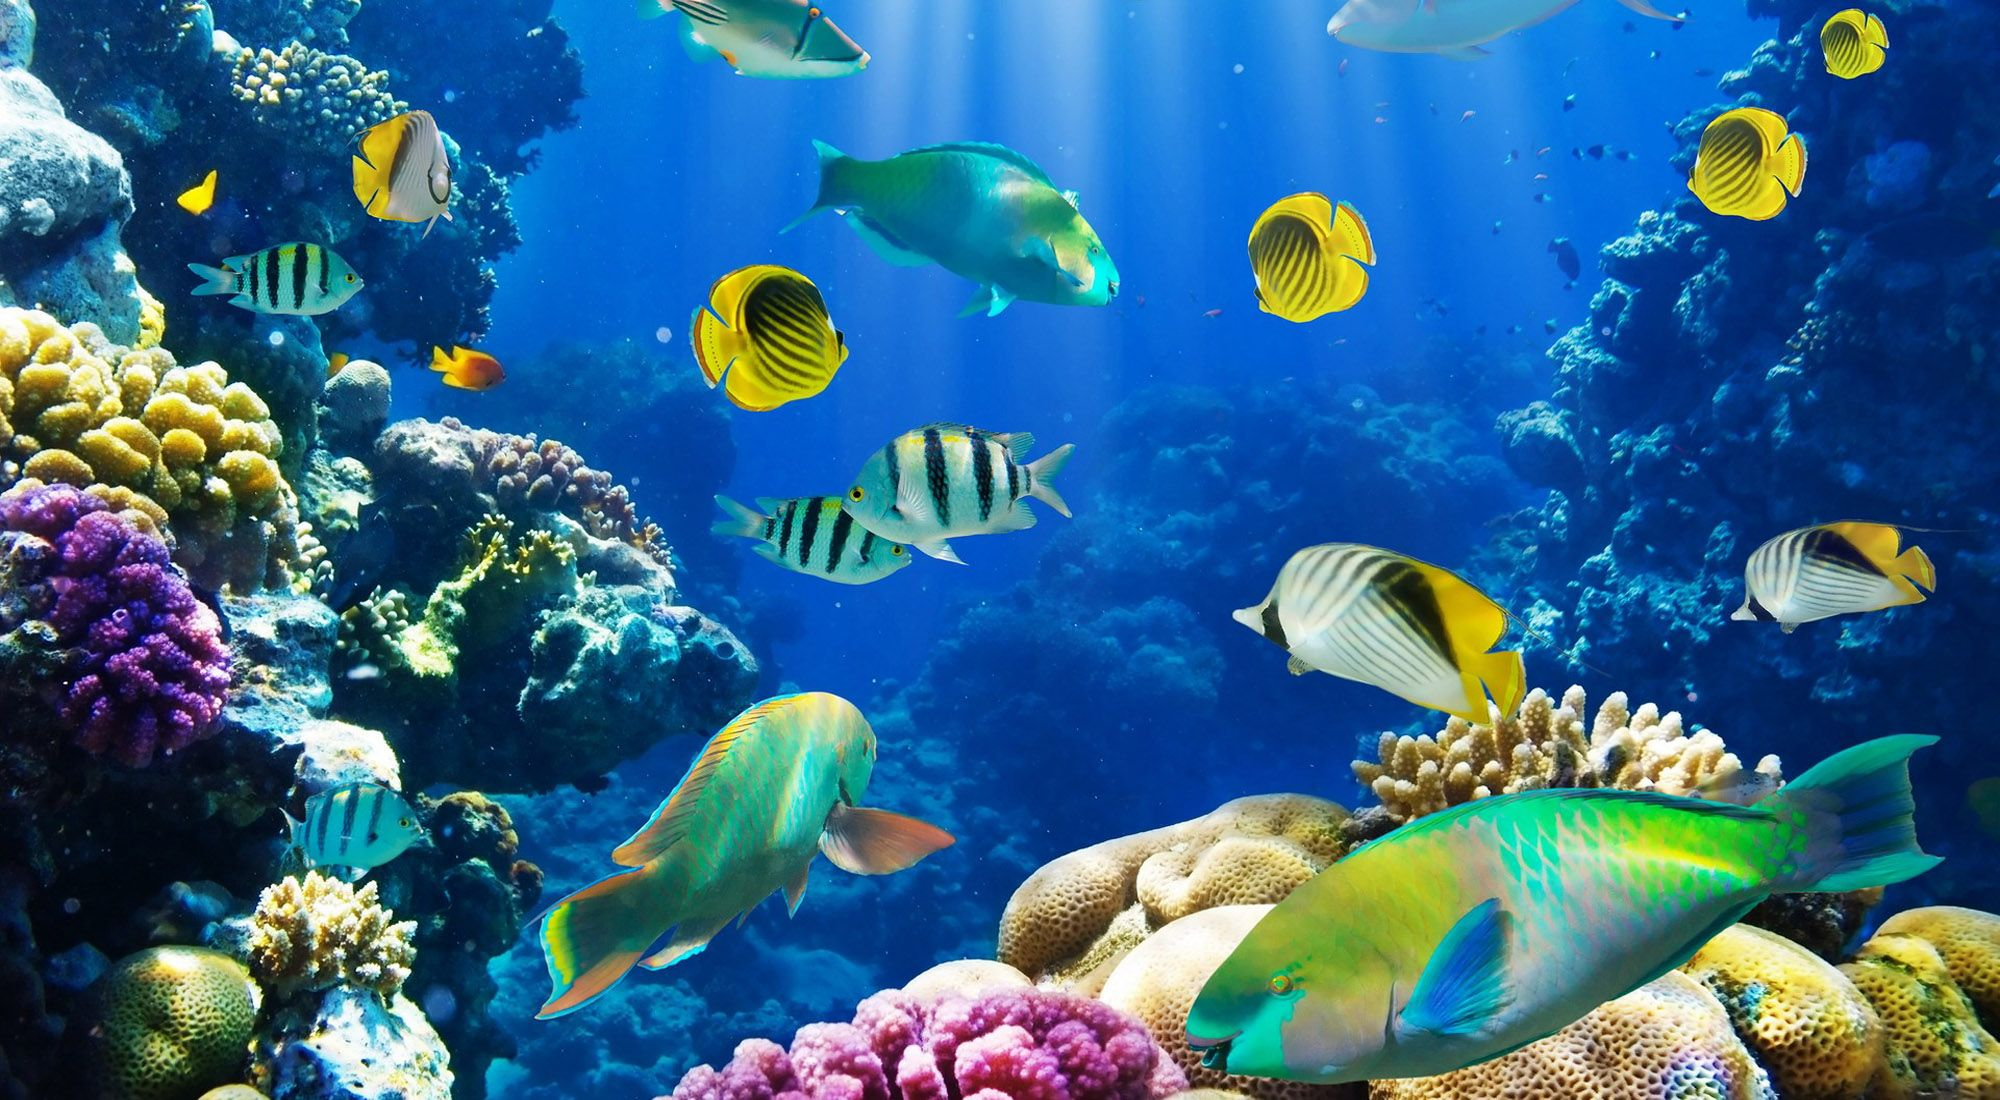 Download Every Iphone Live Wallpaper Live Fish Iphone: Fish HD Wallpaper : Find Best Latest Fish HD Wallpaper In